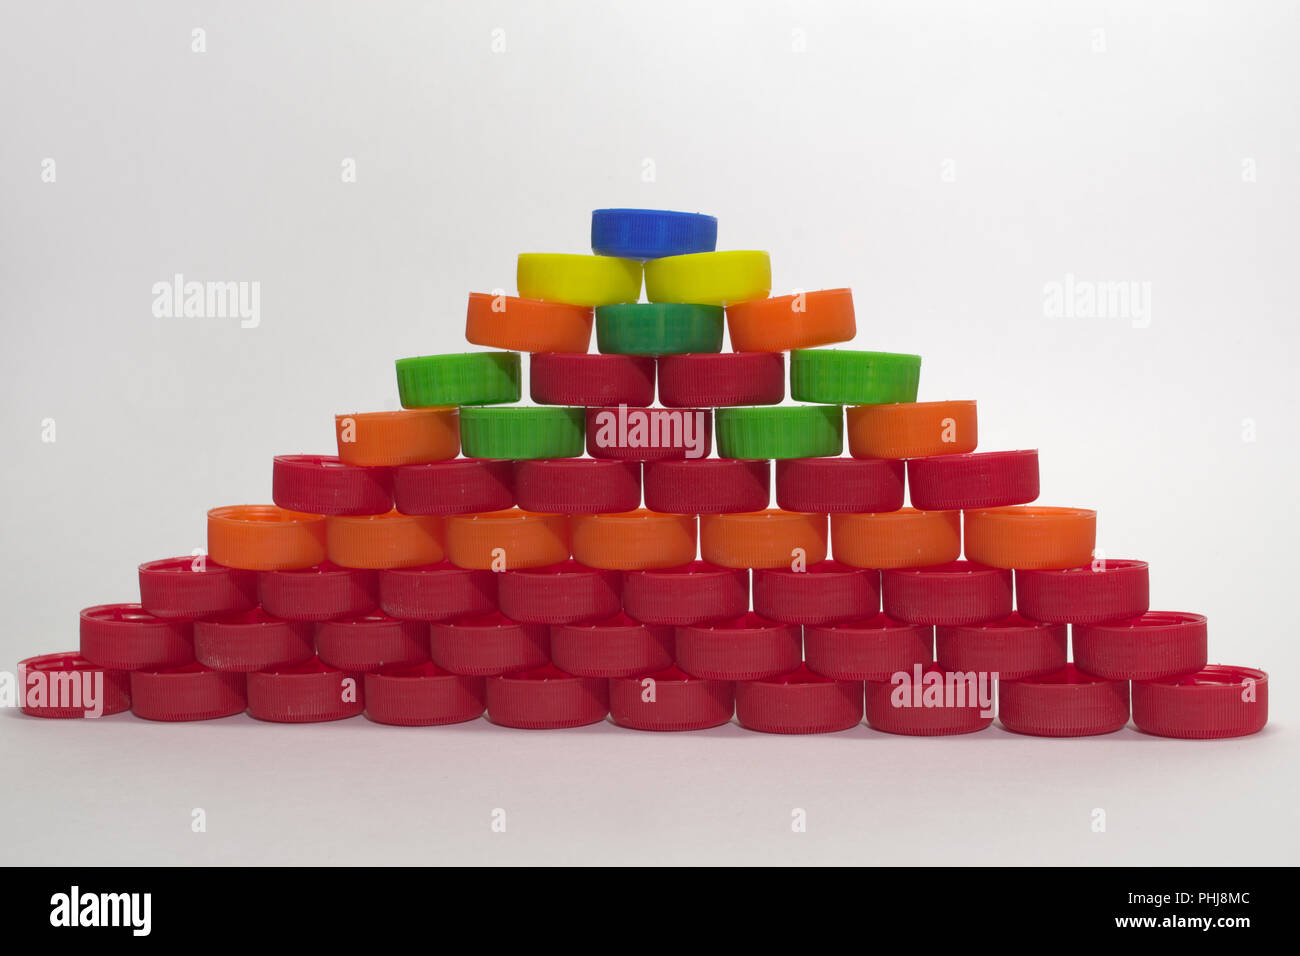 pyramid with blue top element. made out of multicolored bottle caps - Stock Image